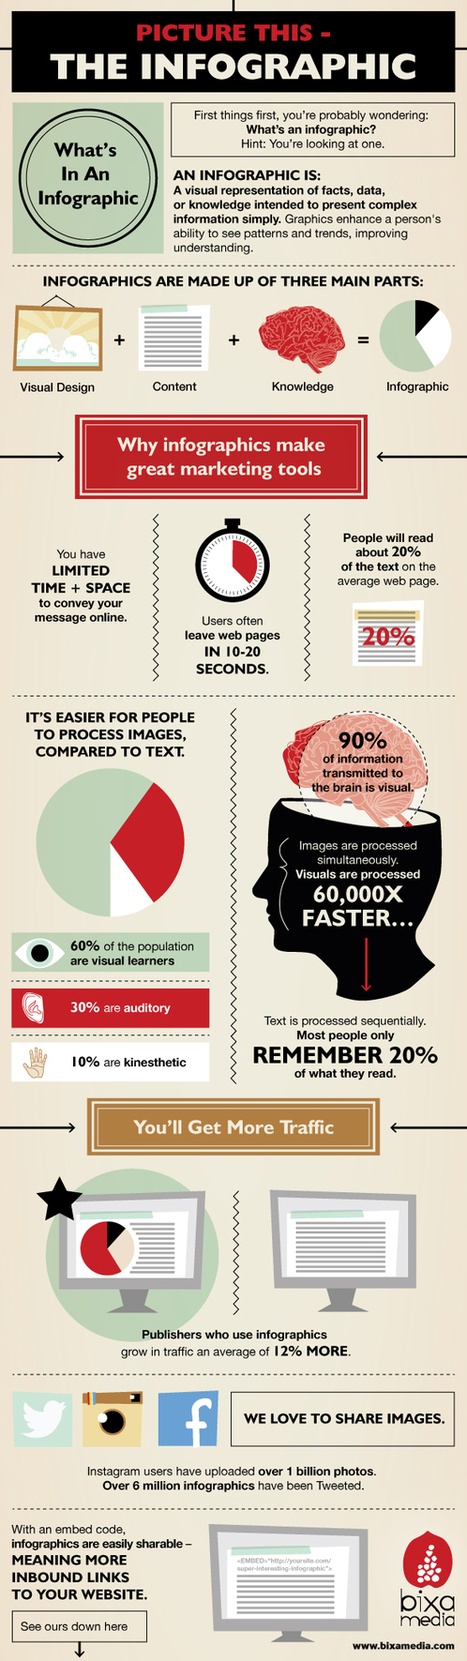 5 Reason Why Infographics Make Great Marketing Tools | Marketing on the Web | Scoop.it